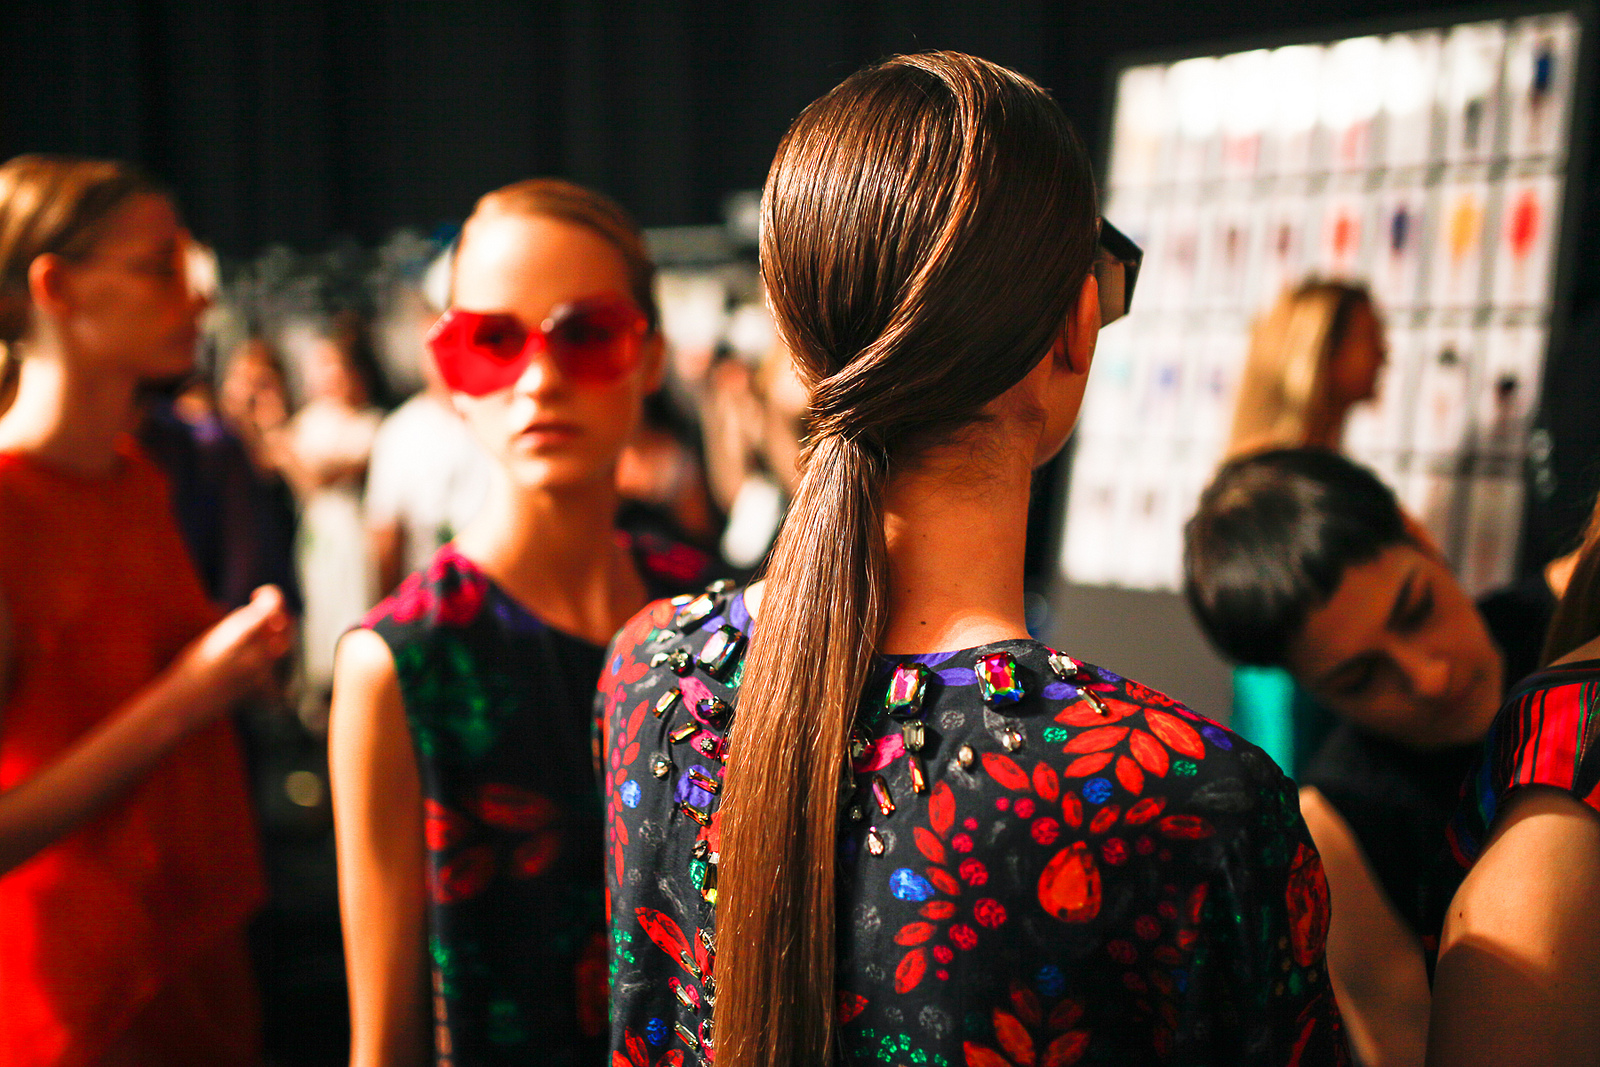 Behind the scenes at New York Fashion Week September 2013. image: creative commons (cc) photos distributed by mainstream via aveda corporation